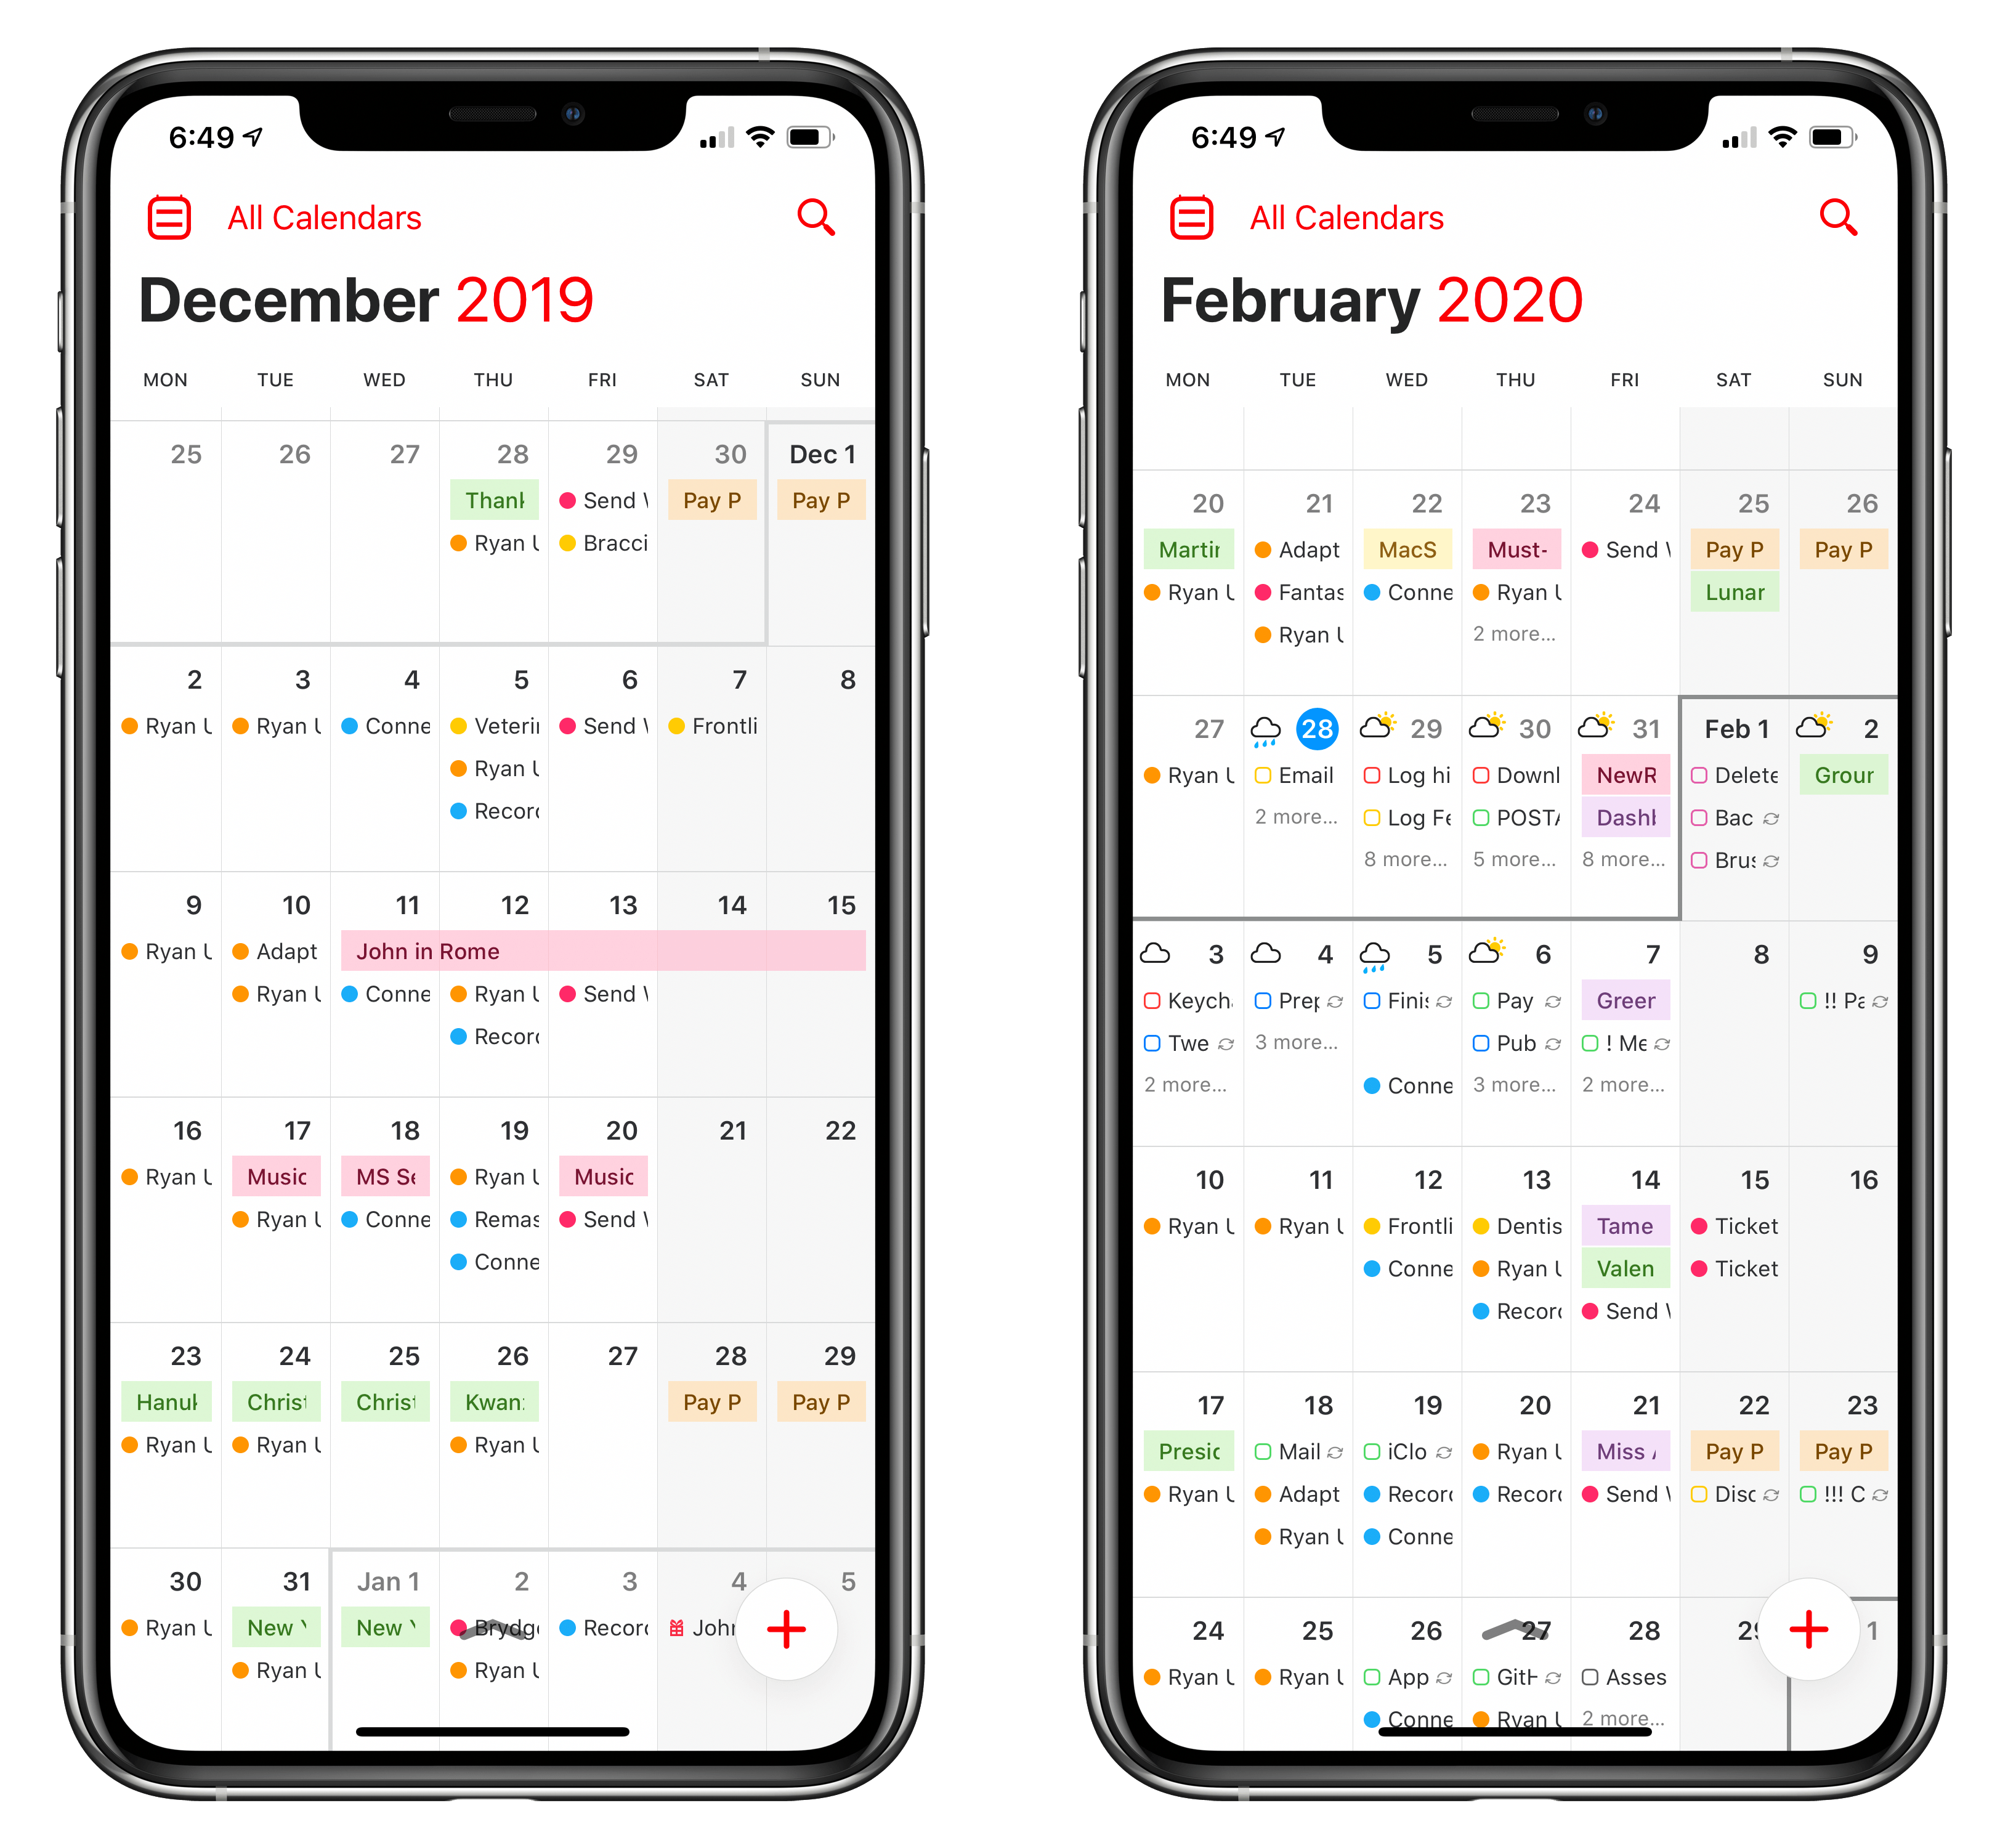 The month's outline grows darker when scrolling in month view.